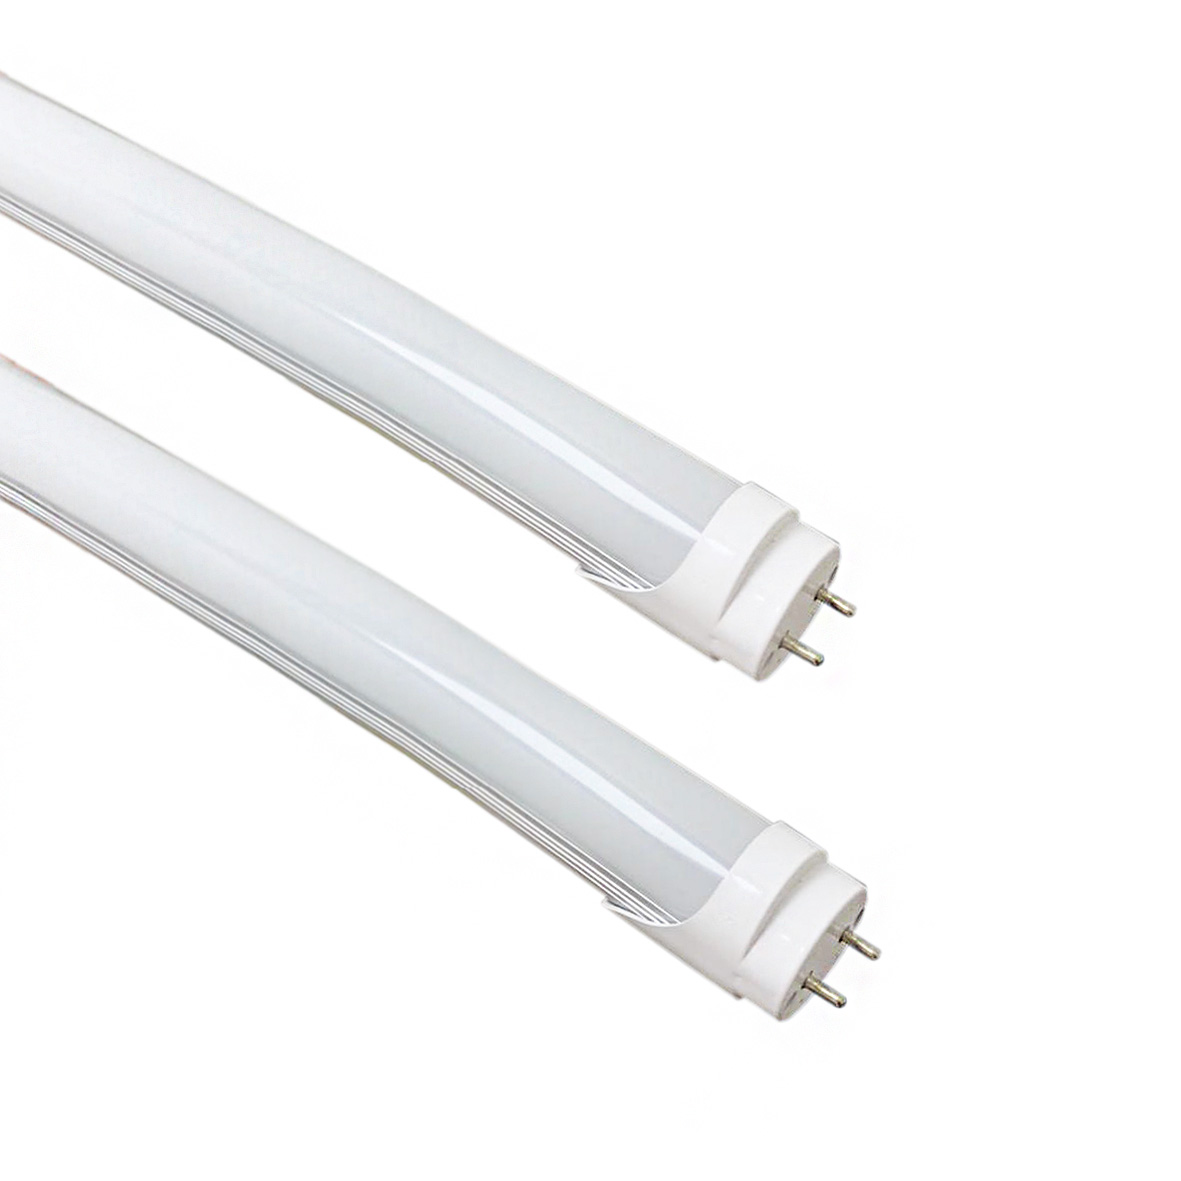 LED tube T8 50w 150cm opaque diffuser for ceiling light fixtures T8-50W-150